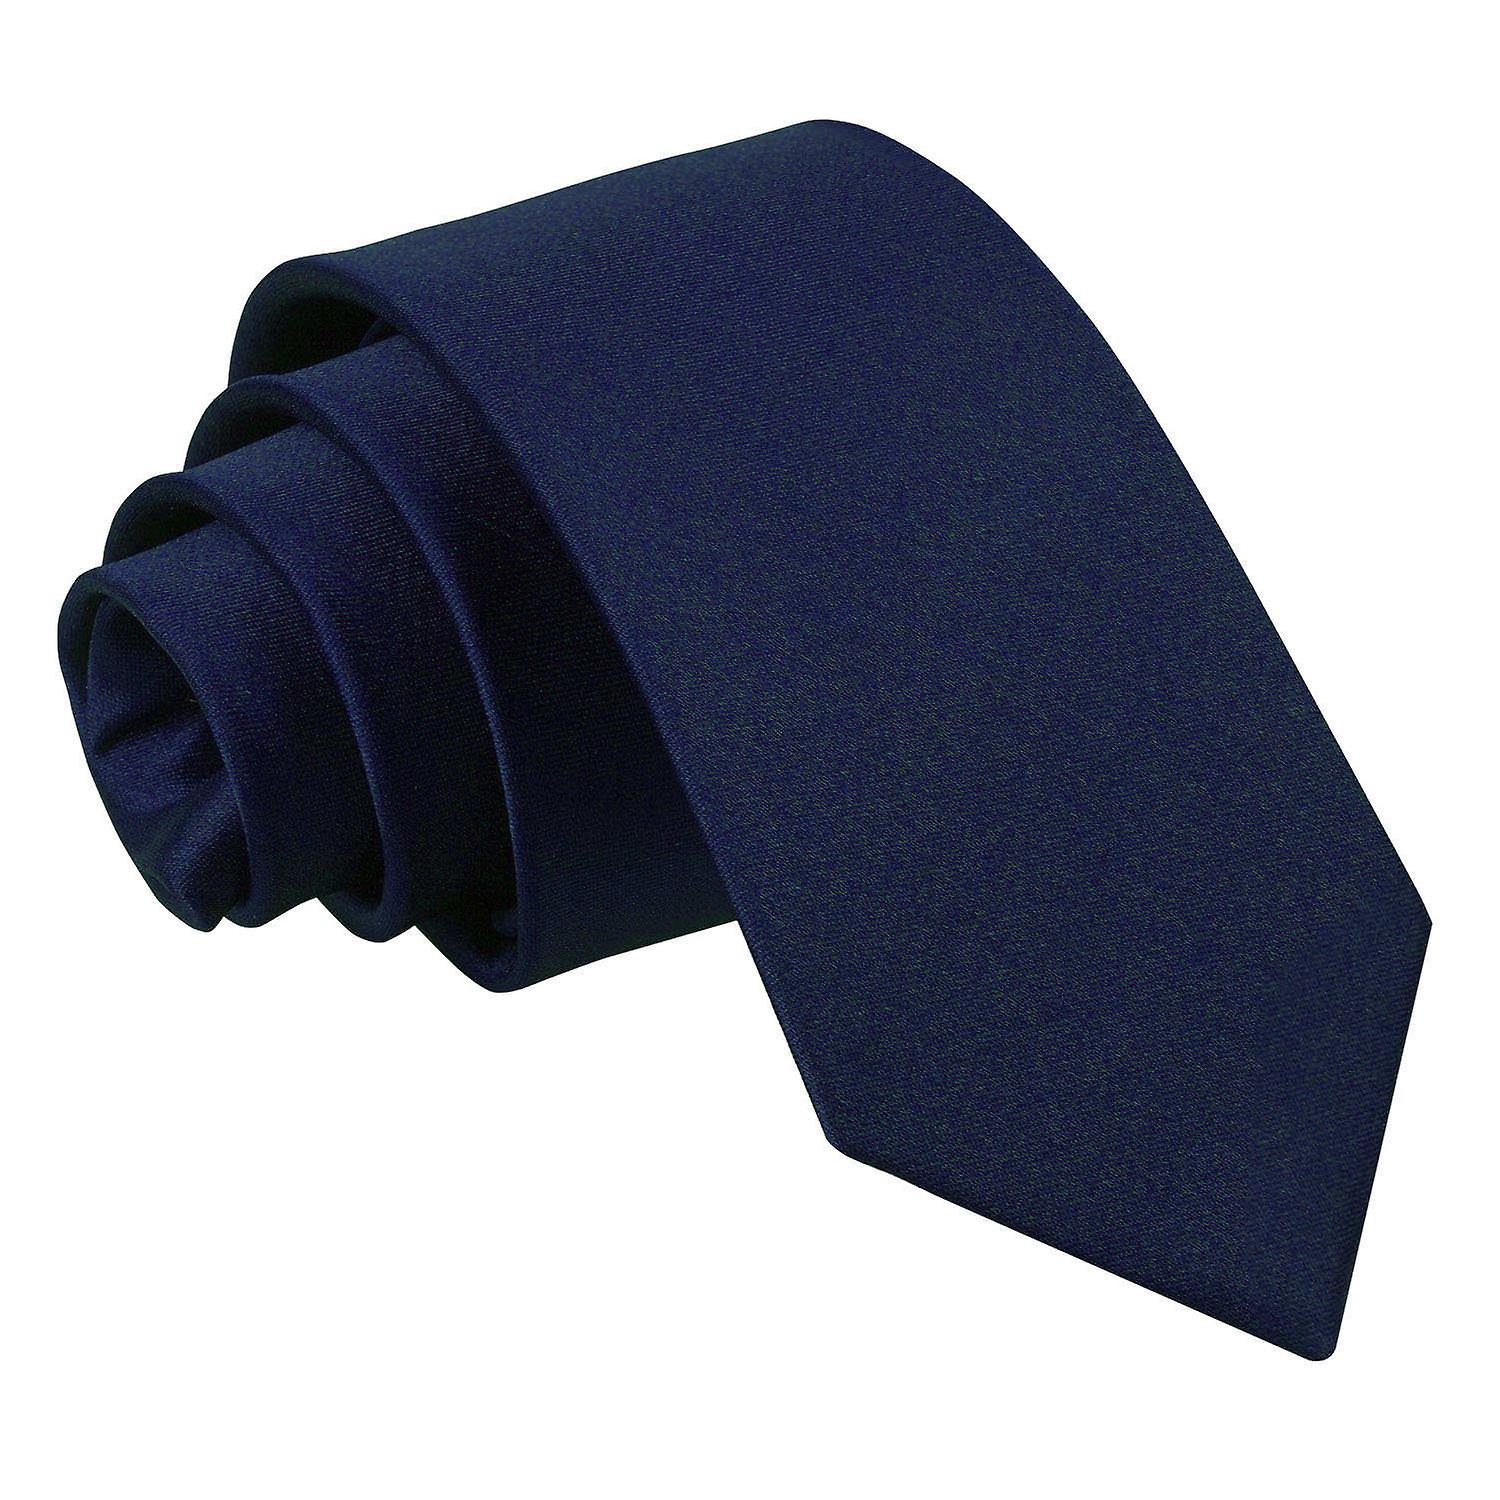 Boy's Plain Navy Blue Satin Tie  (8+ years)